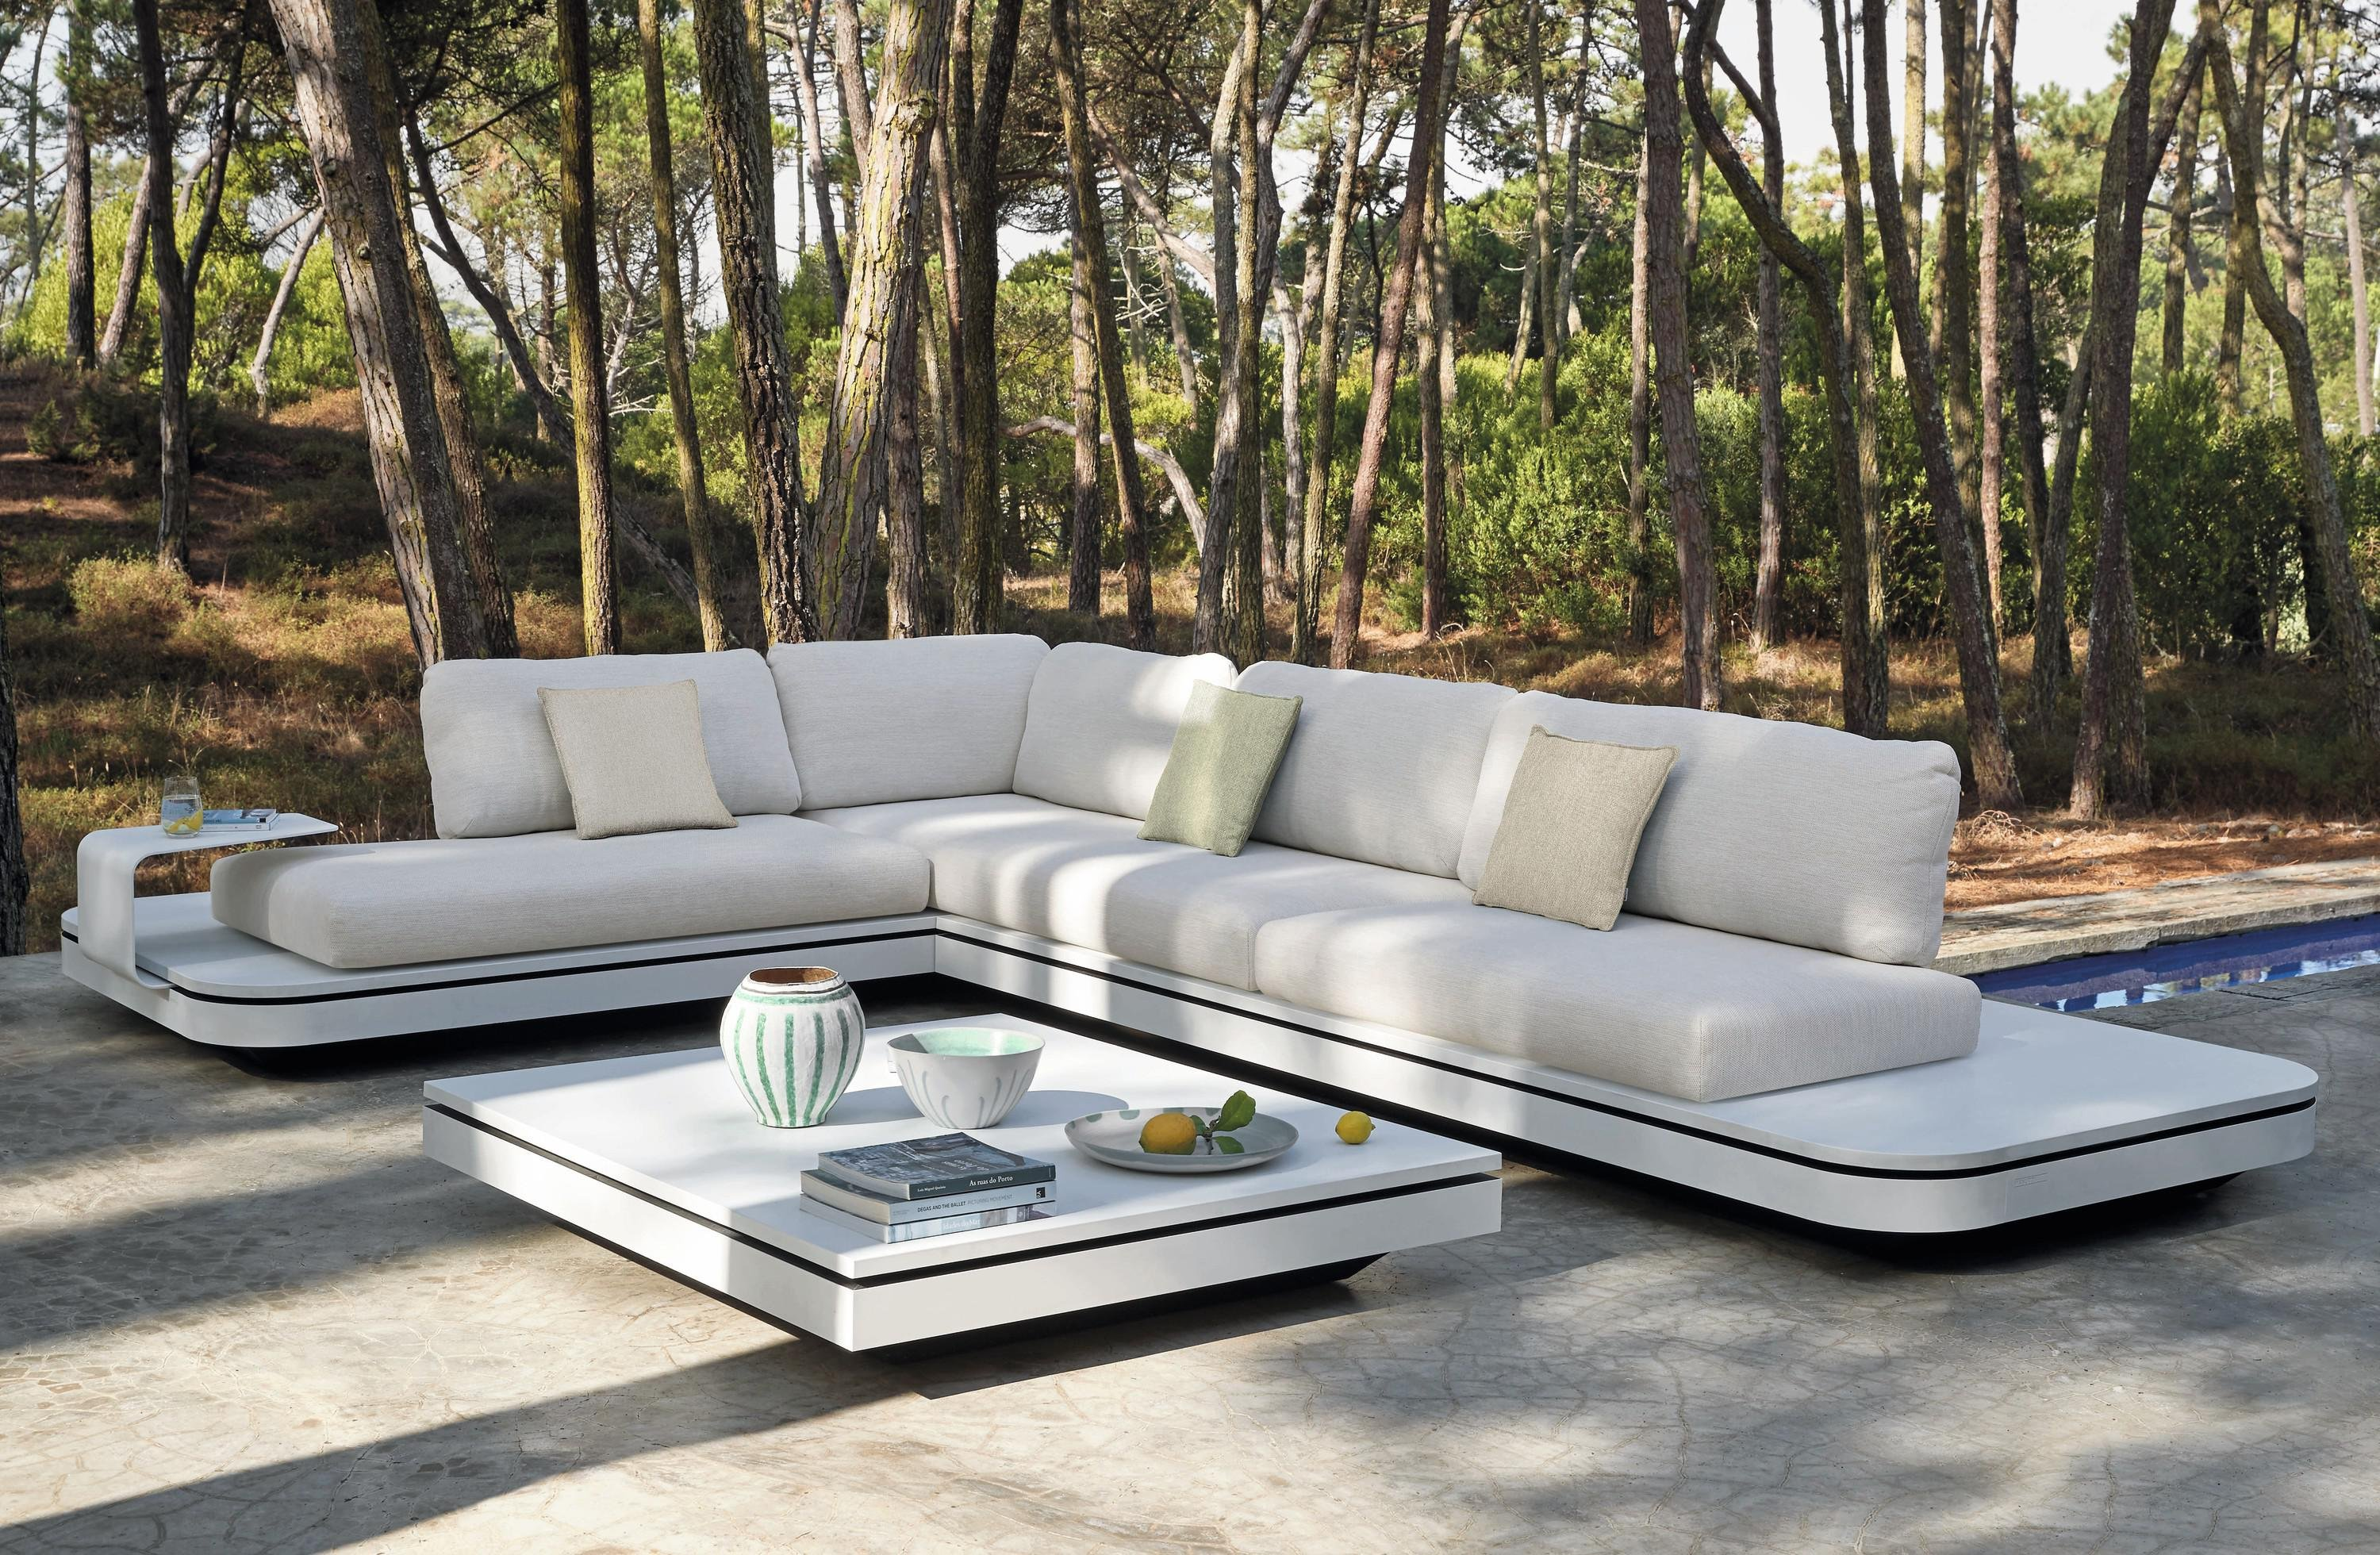 Elements Modular Sofa from Manutti, designed by Gerd Couckhuyt